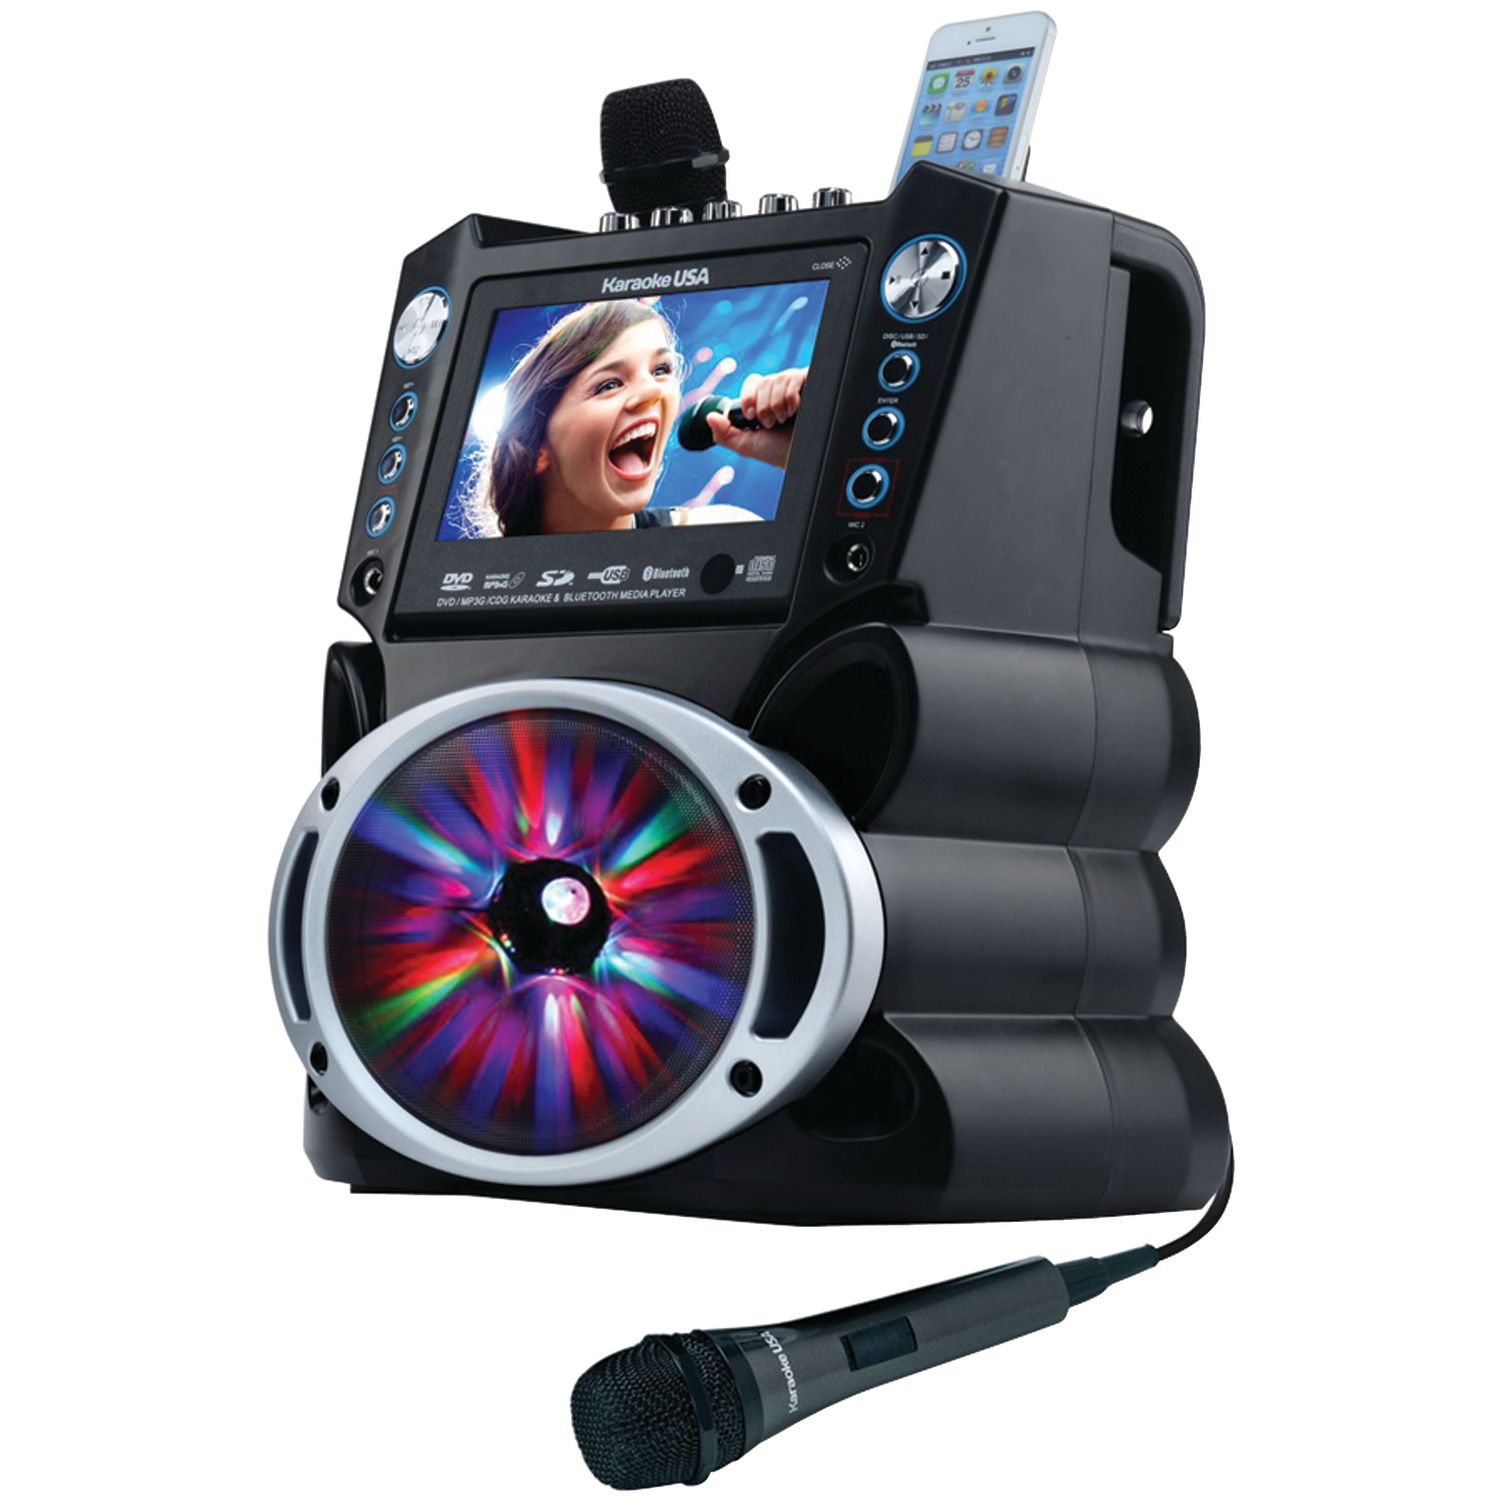 """Karaoke USA GF842 Complete Bluetooth Karaoke System with LED Sync Lights- 35 Watt Power Output includes 2 Microphones, Remote Control, 7"""" Color Screen, Record Function. Plays DVD/CDG/MP3G / USB /SD"""